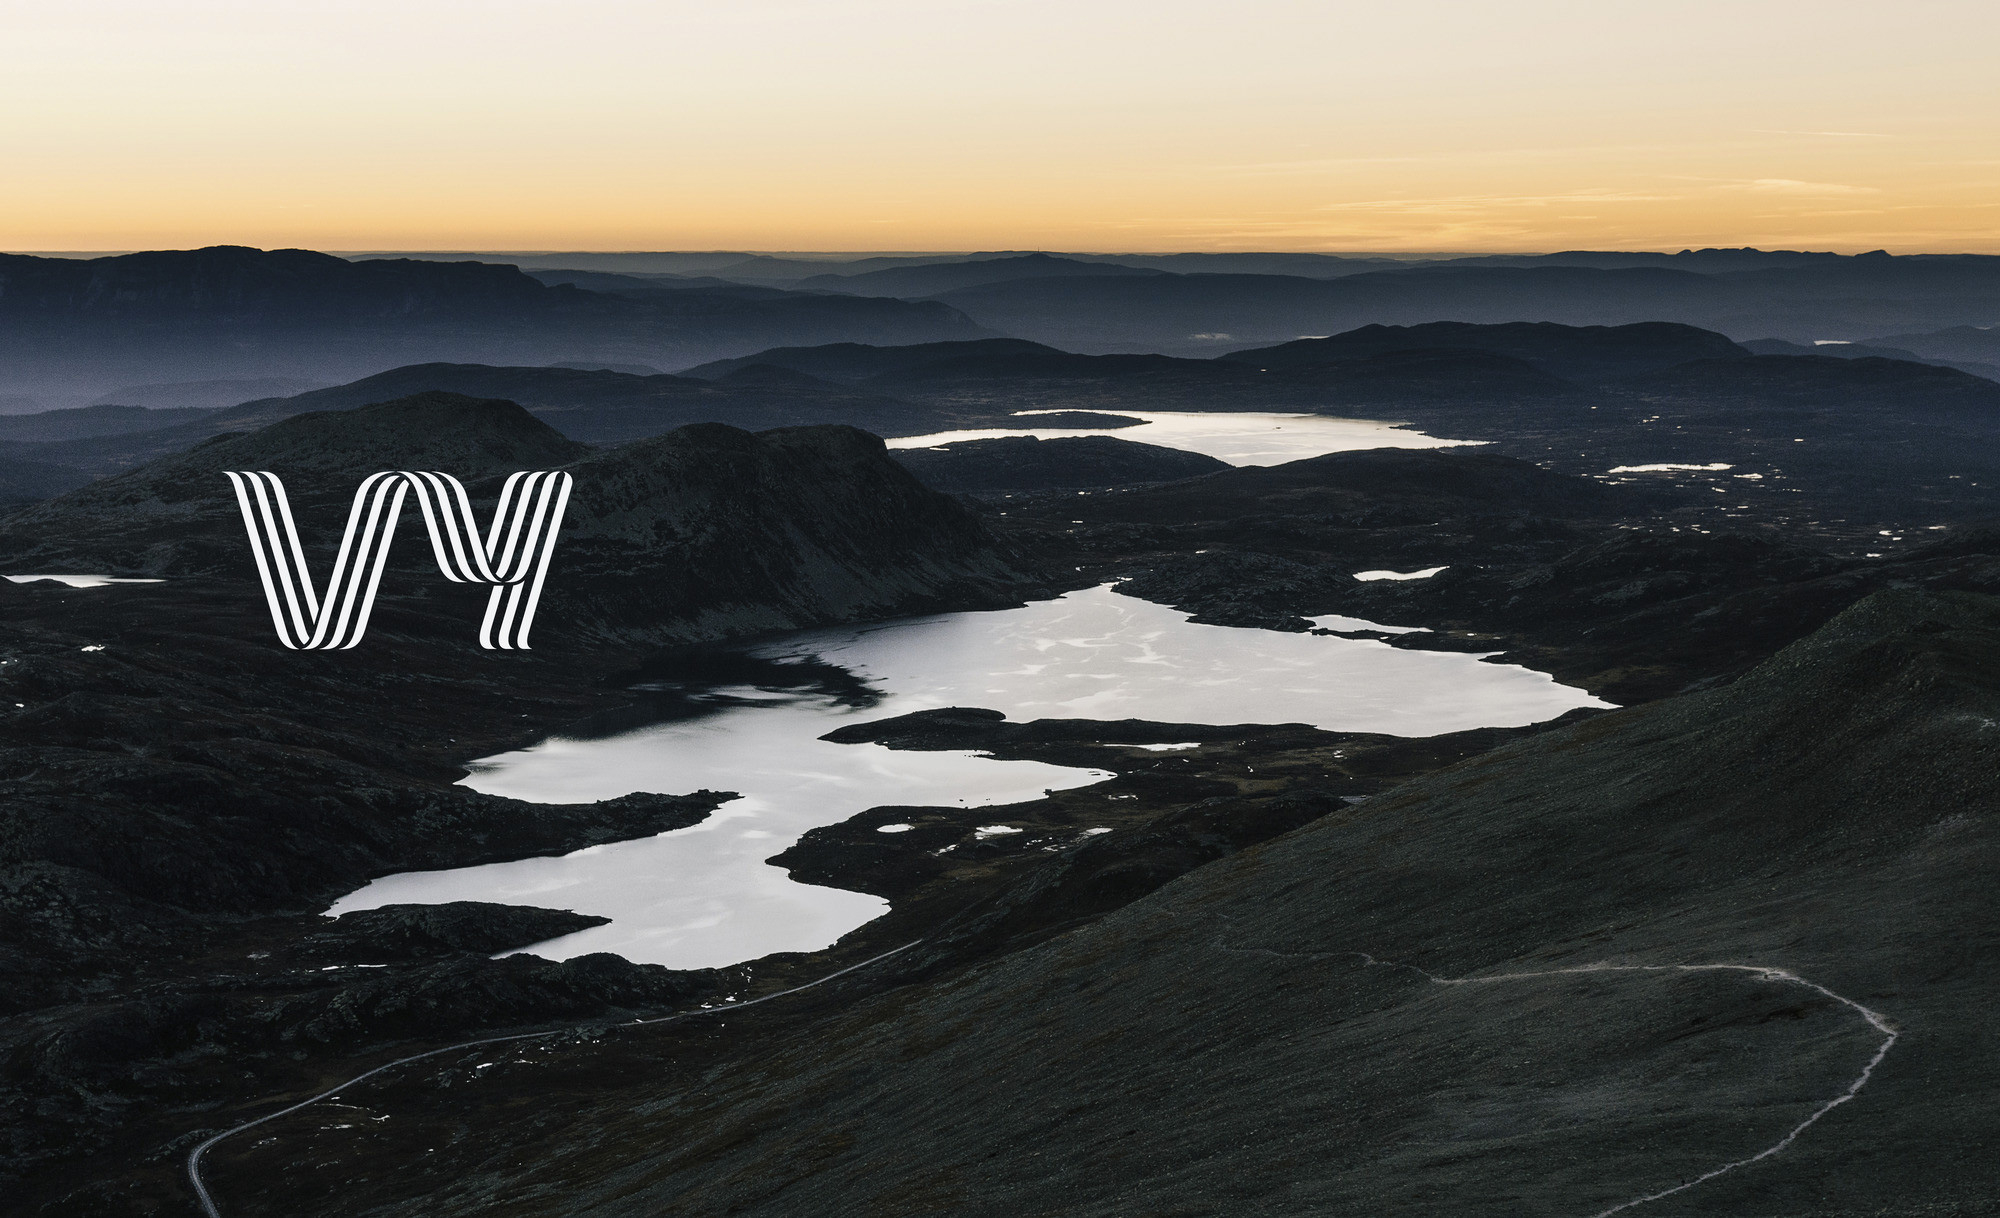 New Logo and Identity for Vy by Snøhetta